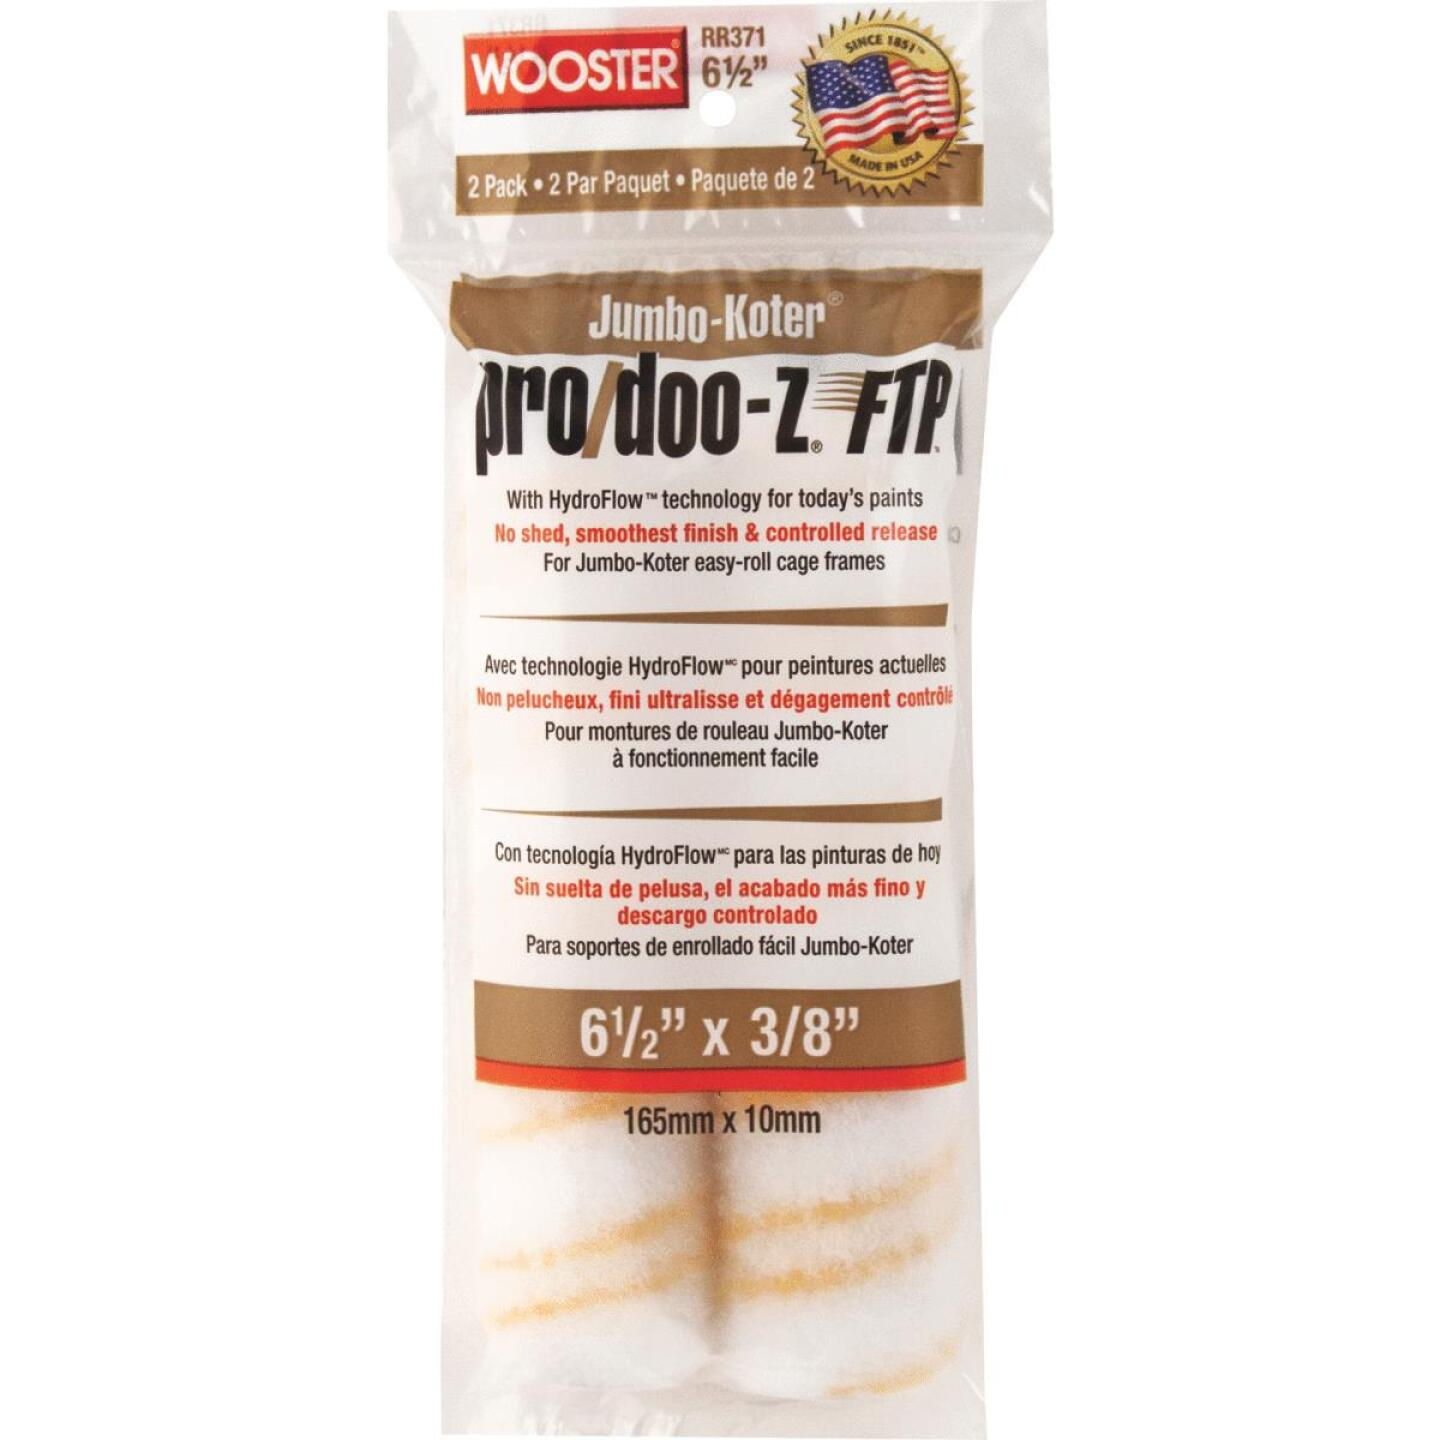 Wooster Jumbo-Koter Pro/Doo-Z FTP 6-1/2 In. x 3/8 In. Mini Woven Fabric Roller Cover (2 Pack) Image 1